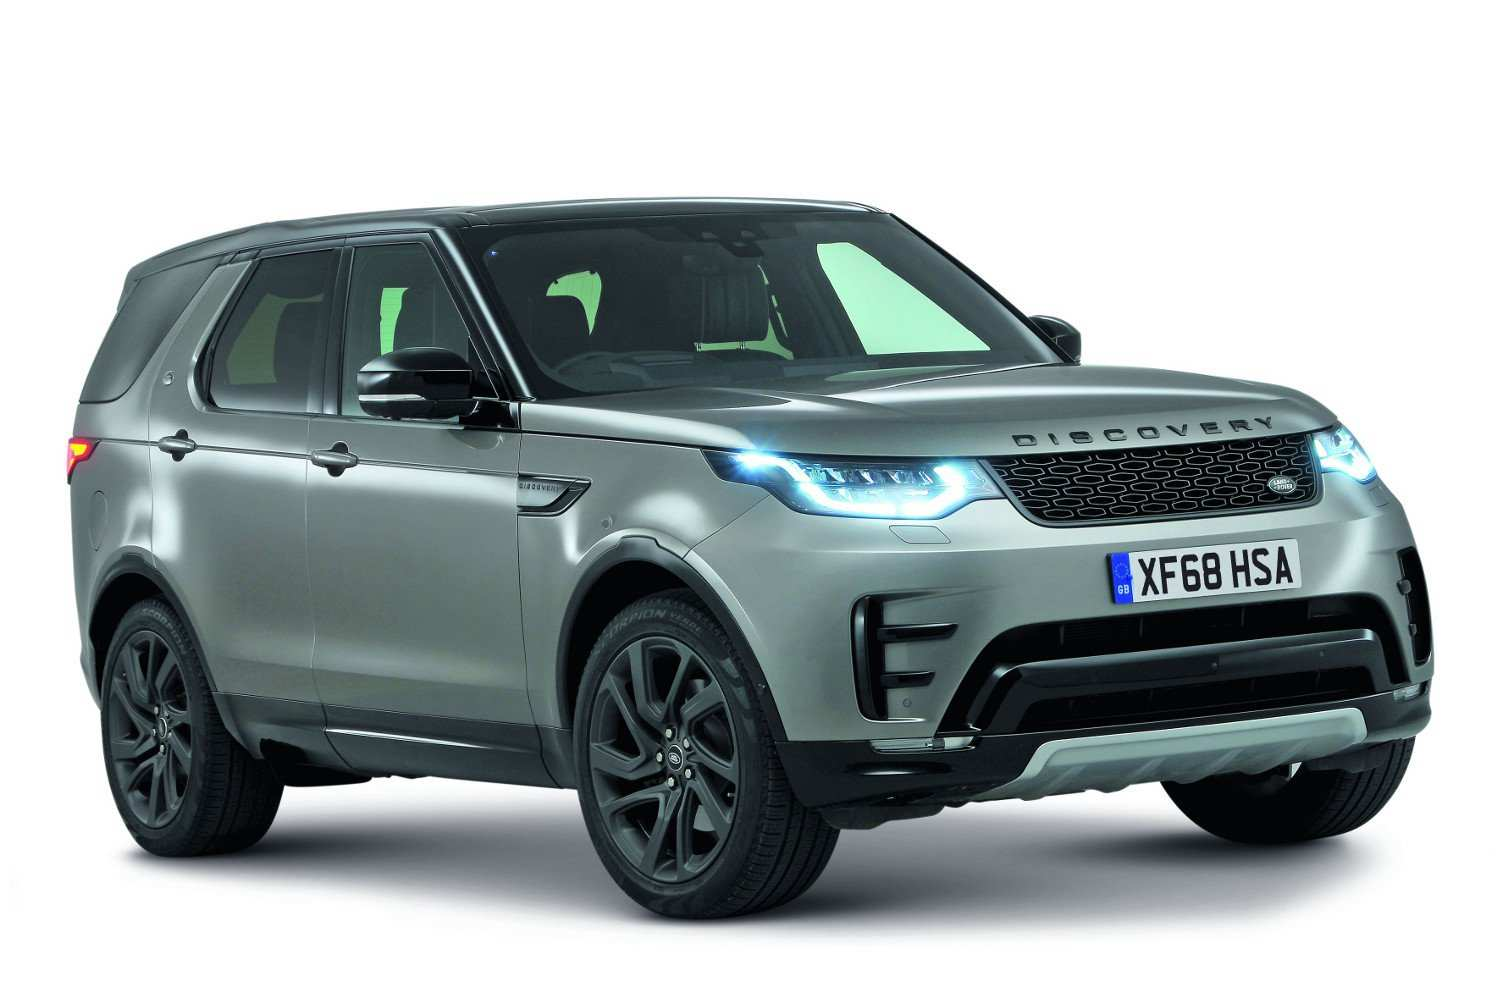 80 Best 2019 Land Rover Discovery Wallpaper